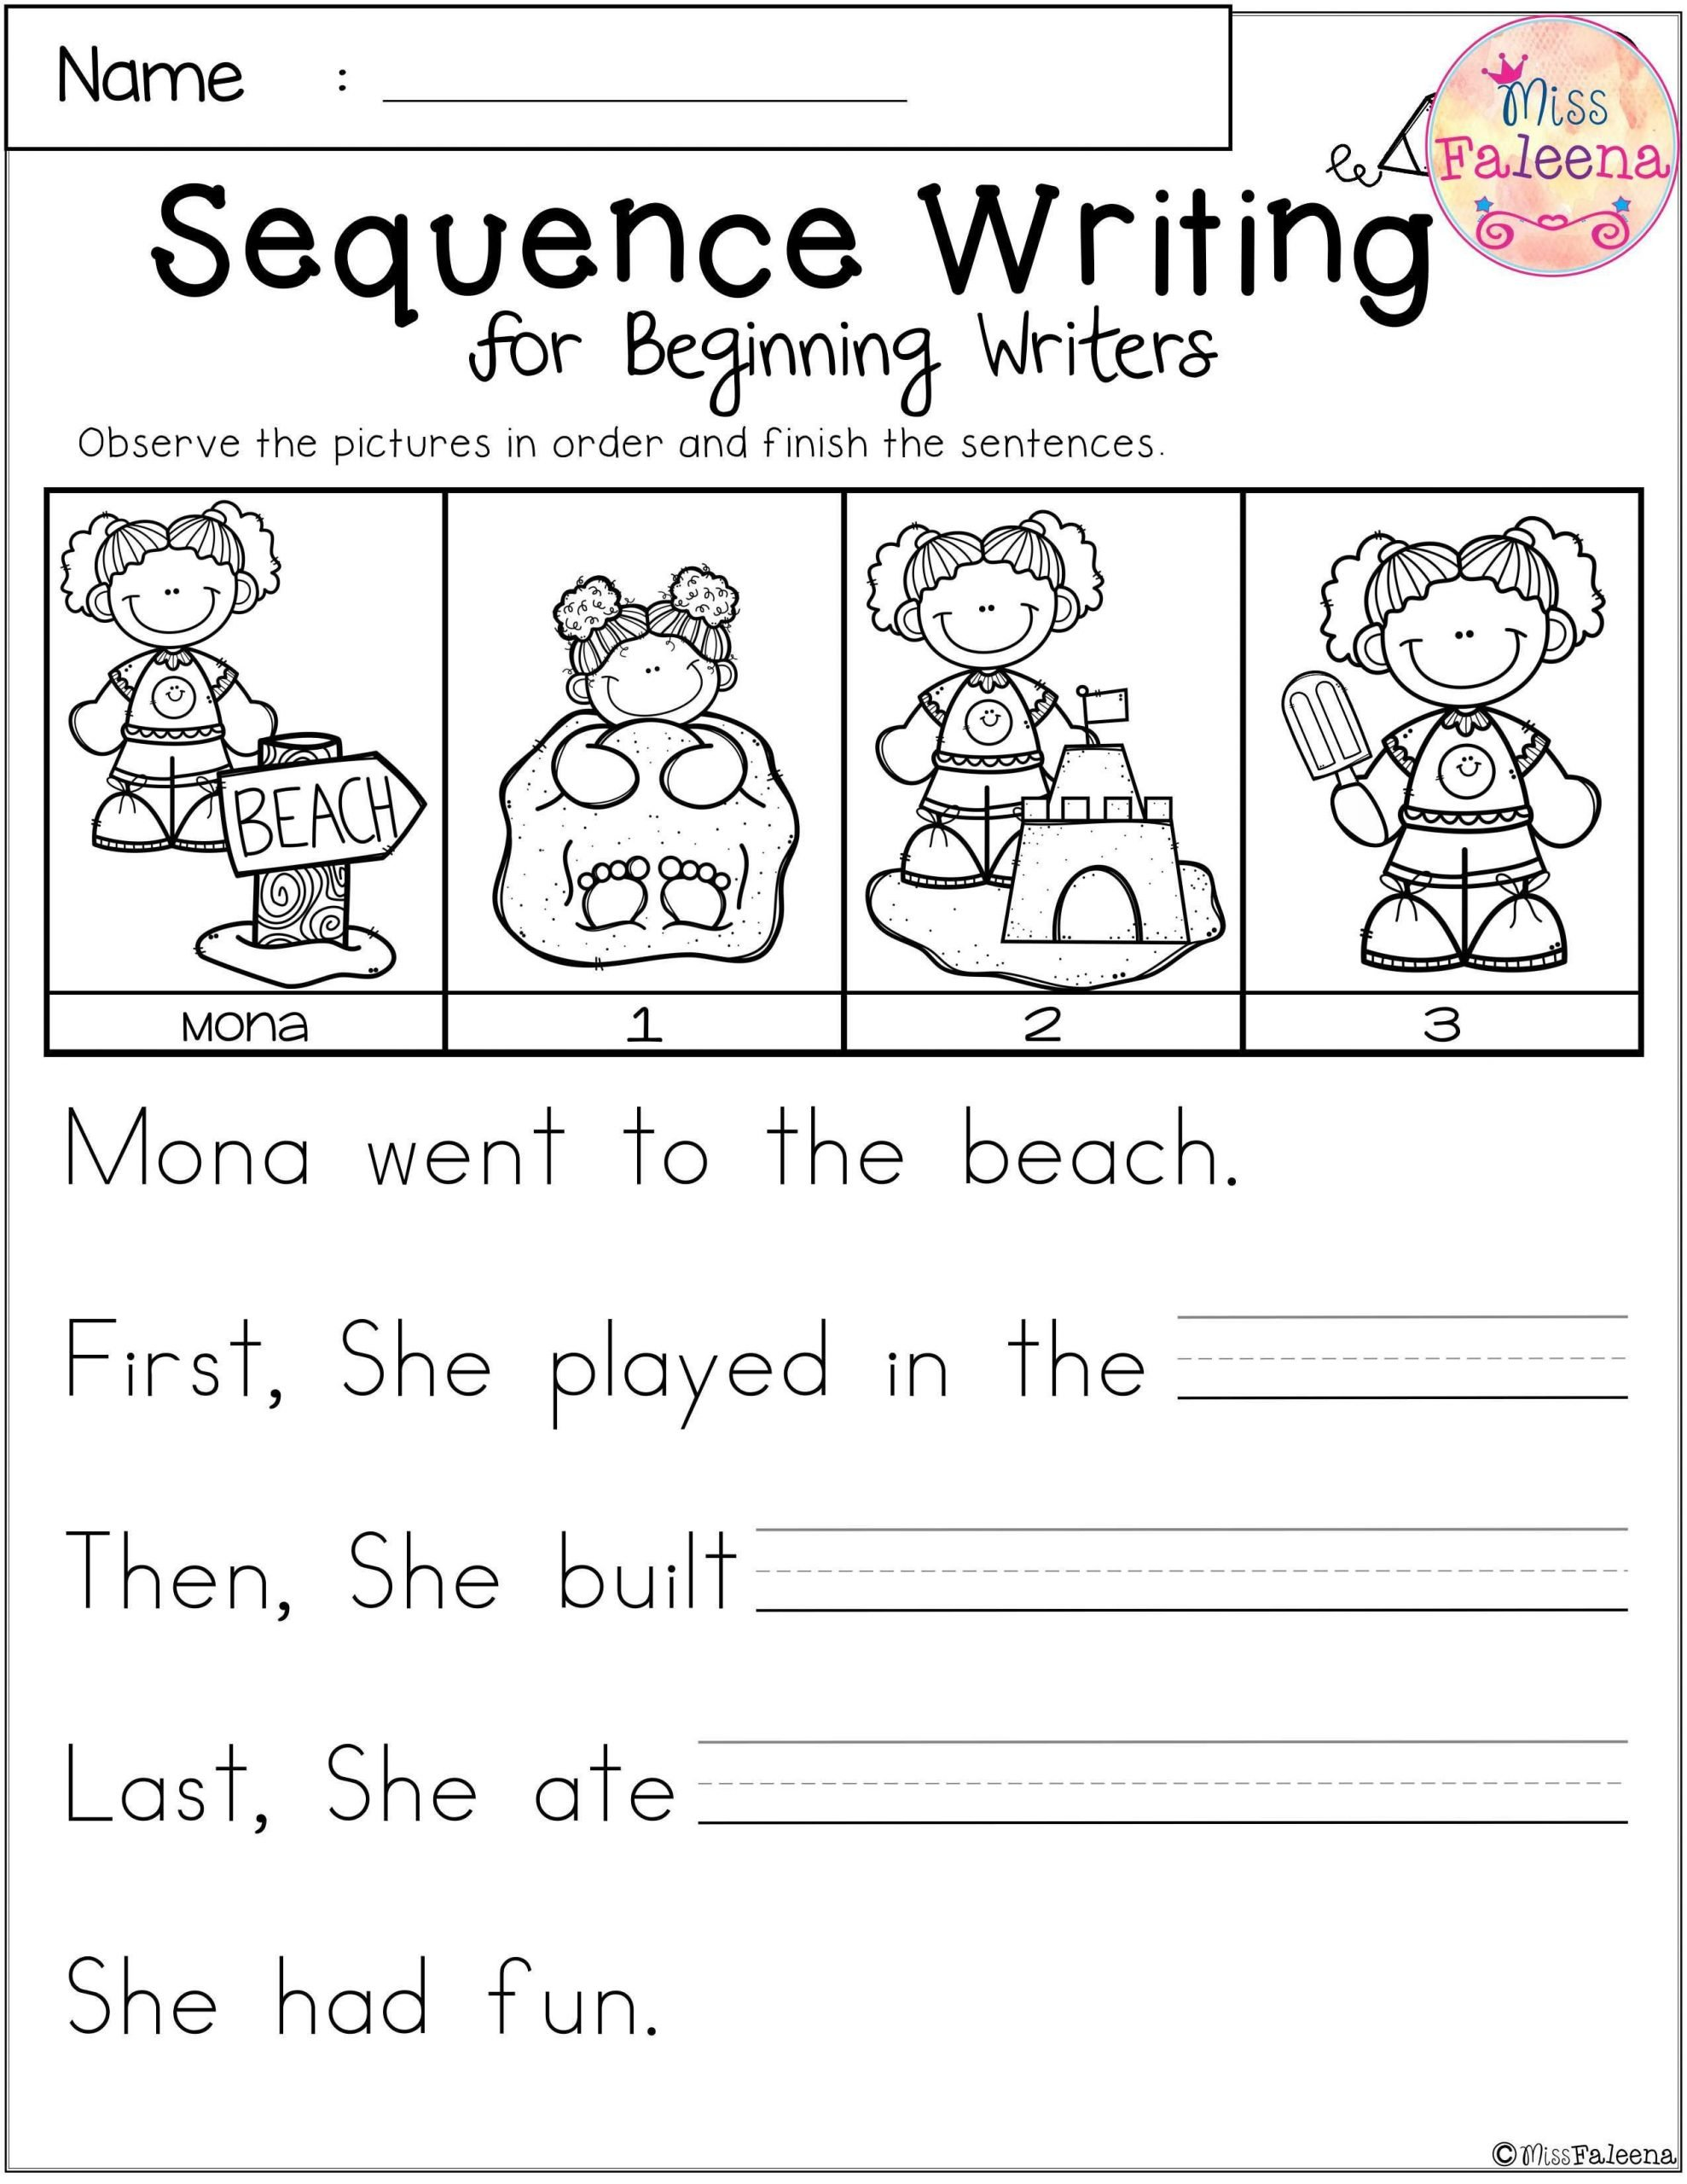 Read and Sequence Worksheets Free Sequence Writing for Beginning Writers